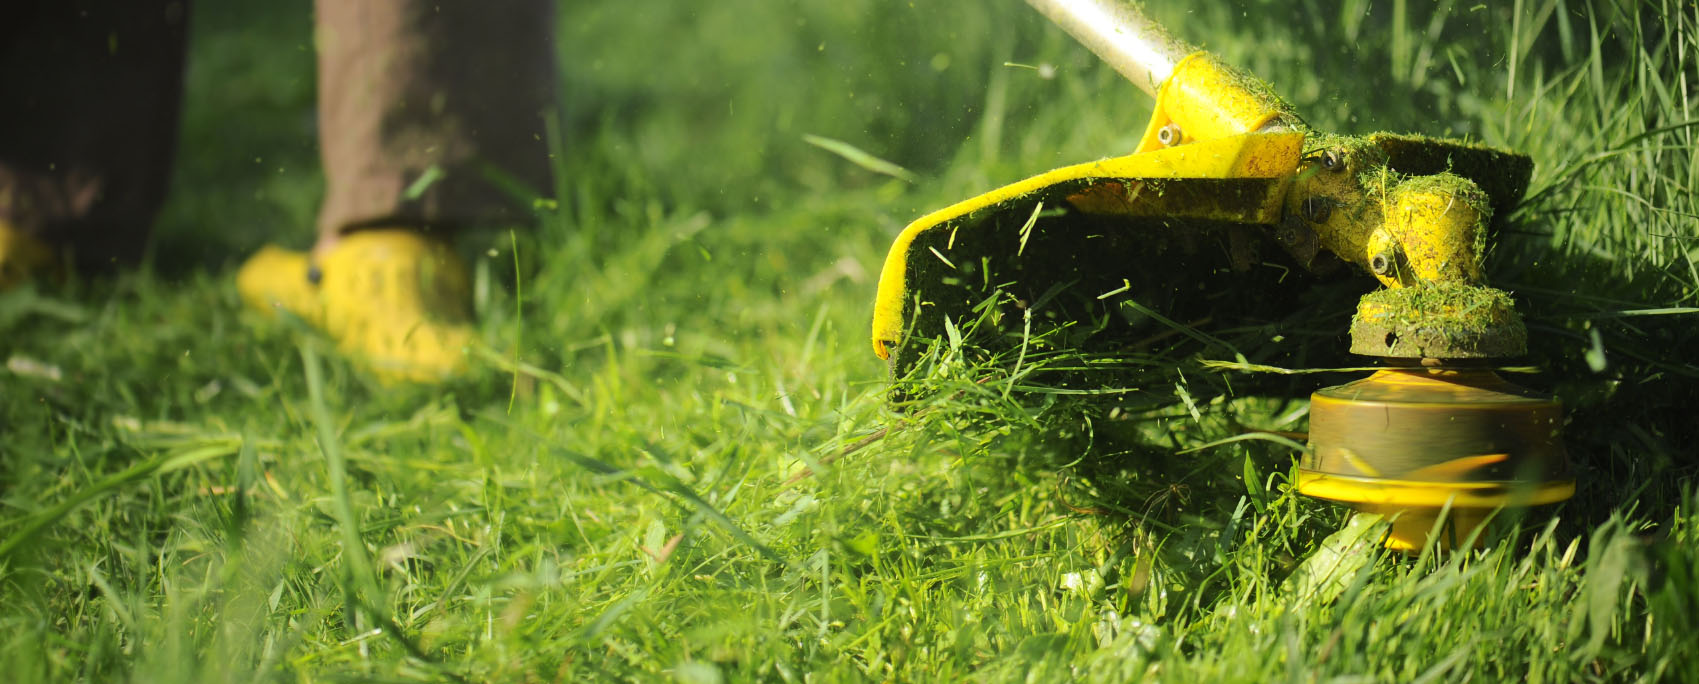 Commercial landscape maintenance in college station round for Lawn care and maintenance